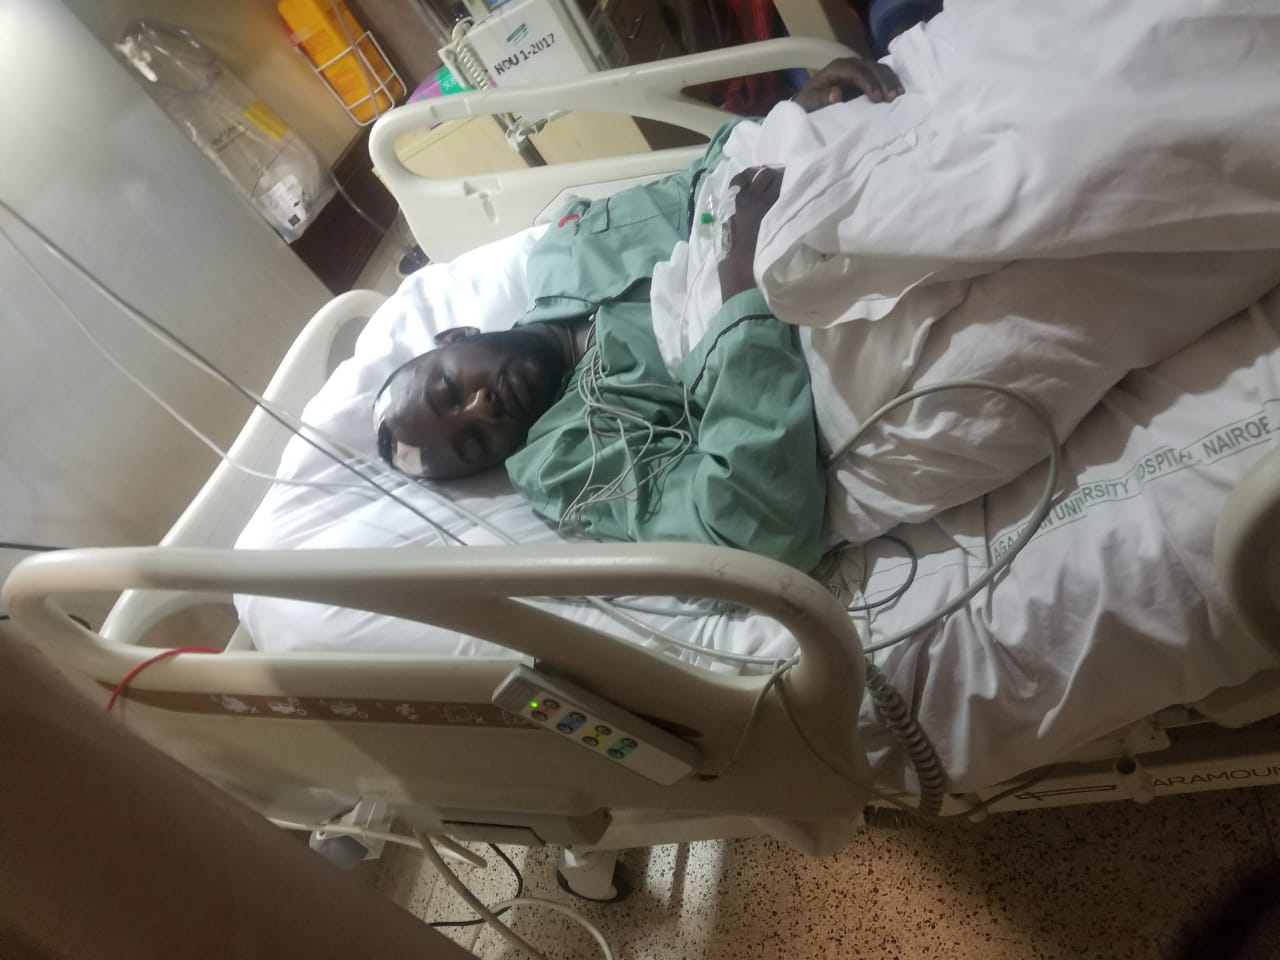 WhatsApp Image 2019 06 04 at 12.58.01 - Lamu Senator in ICU after being attack during date with Saumu Mbuvi